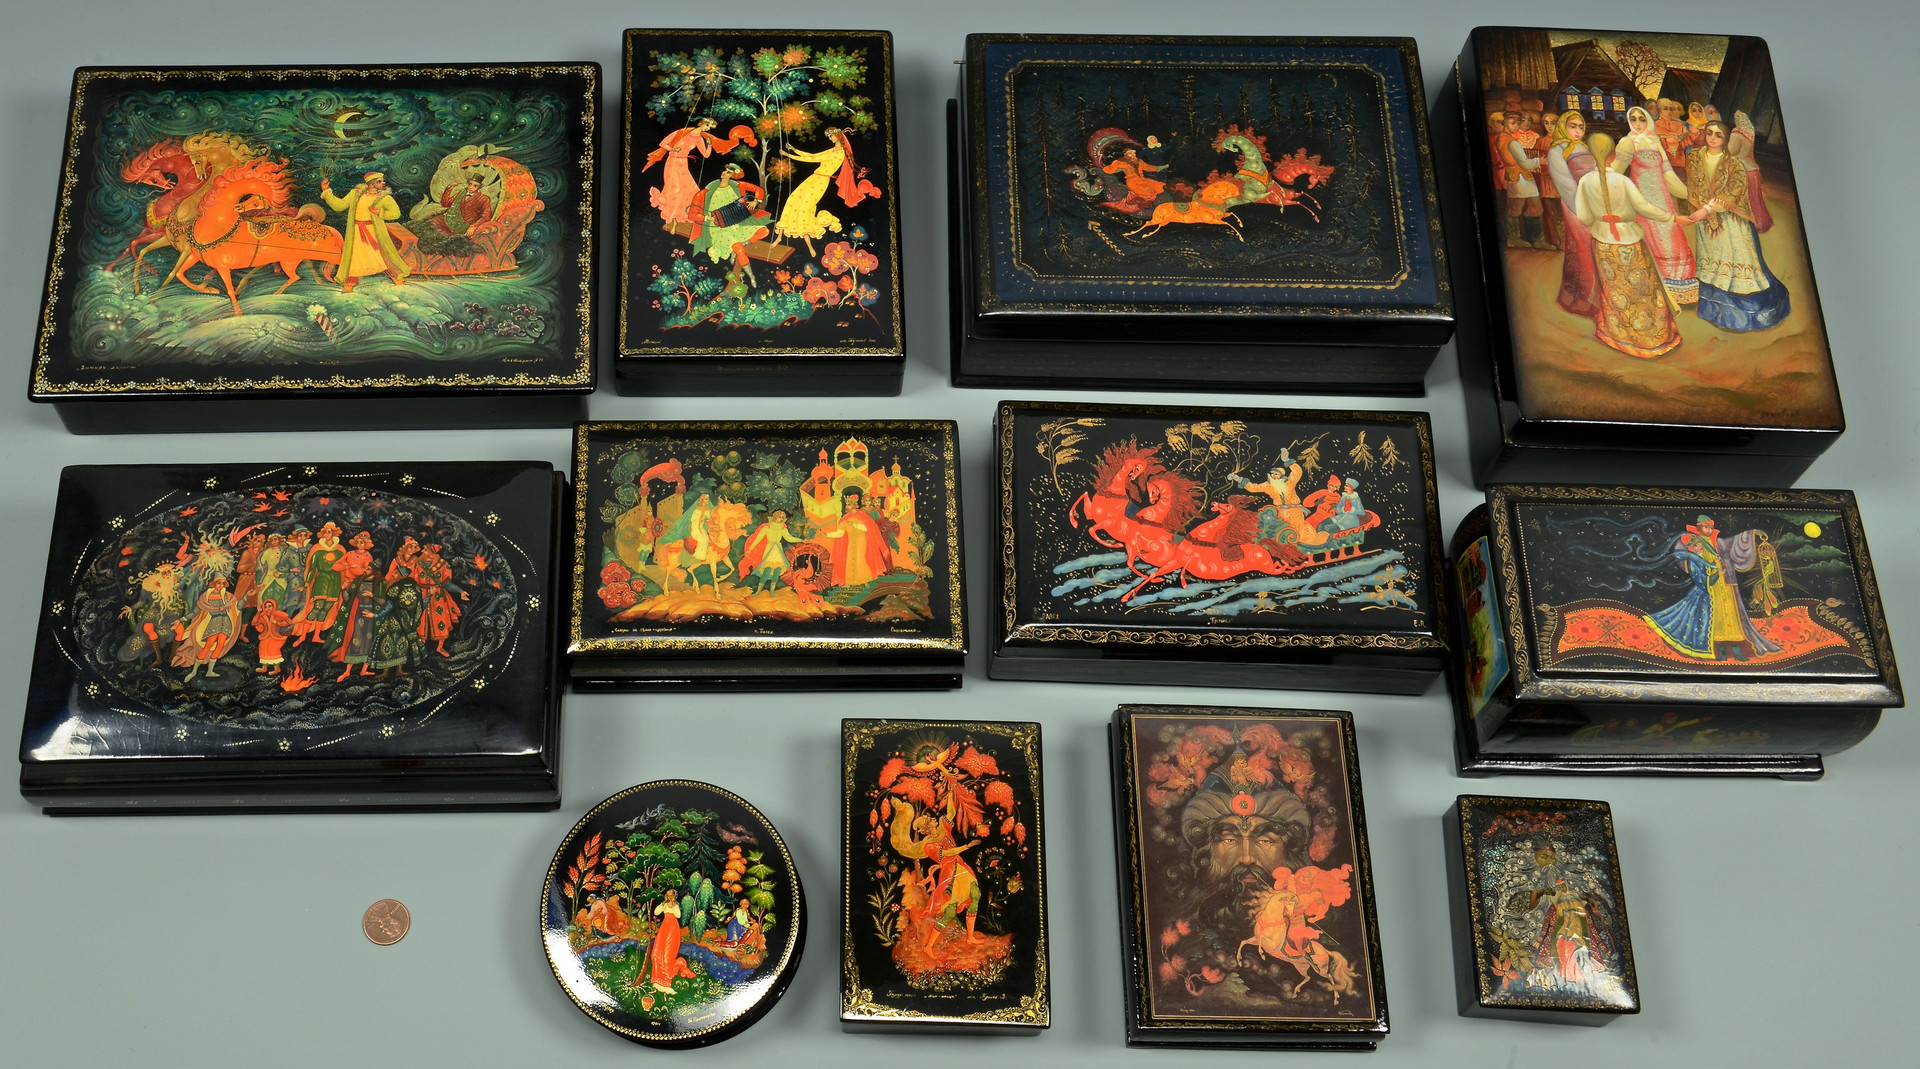 Lot 351: 8 Russian Lacquer Boxes